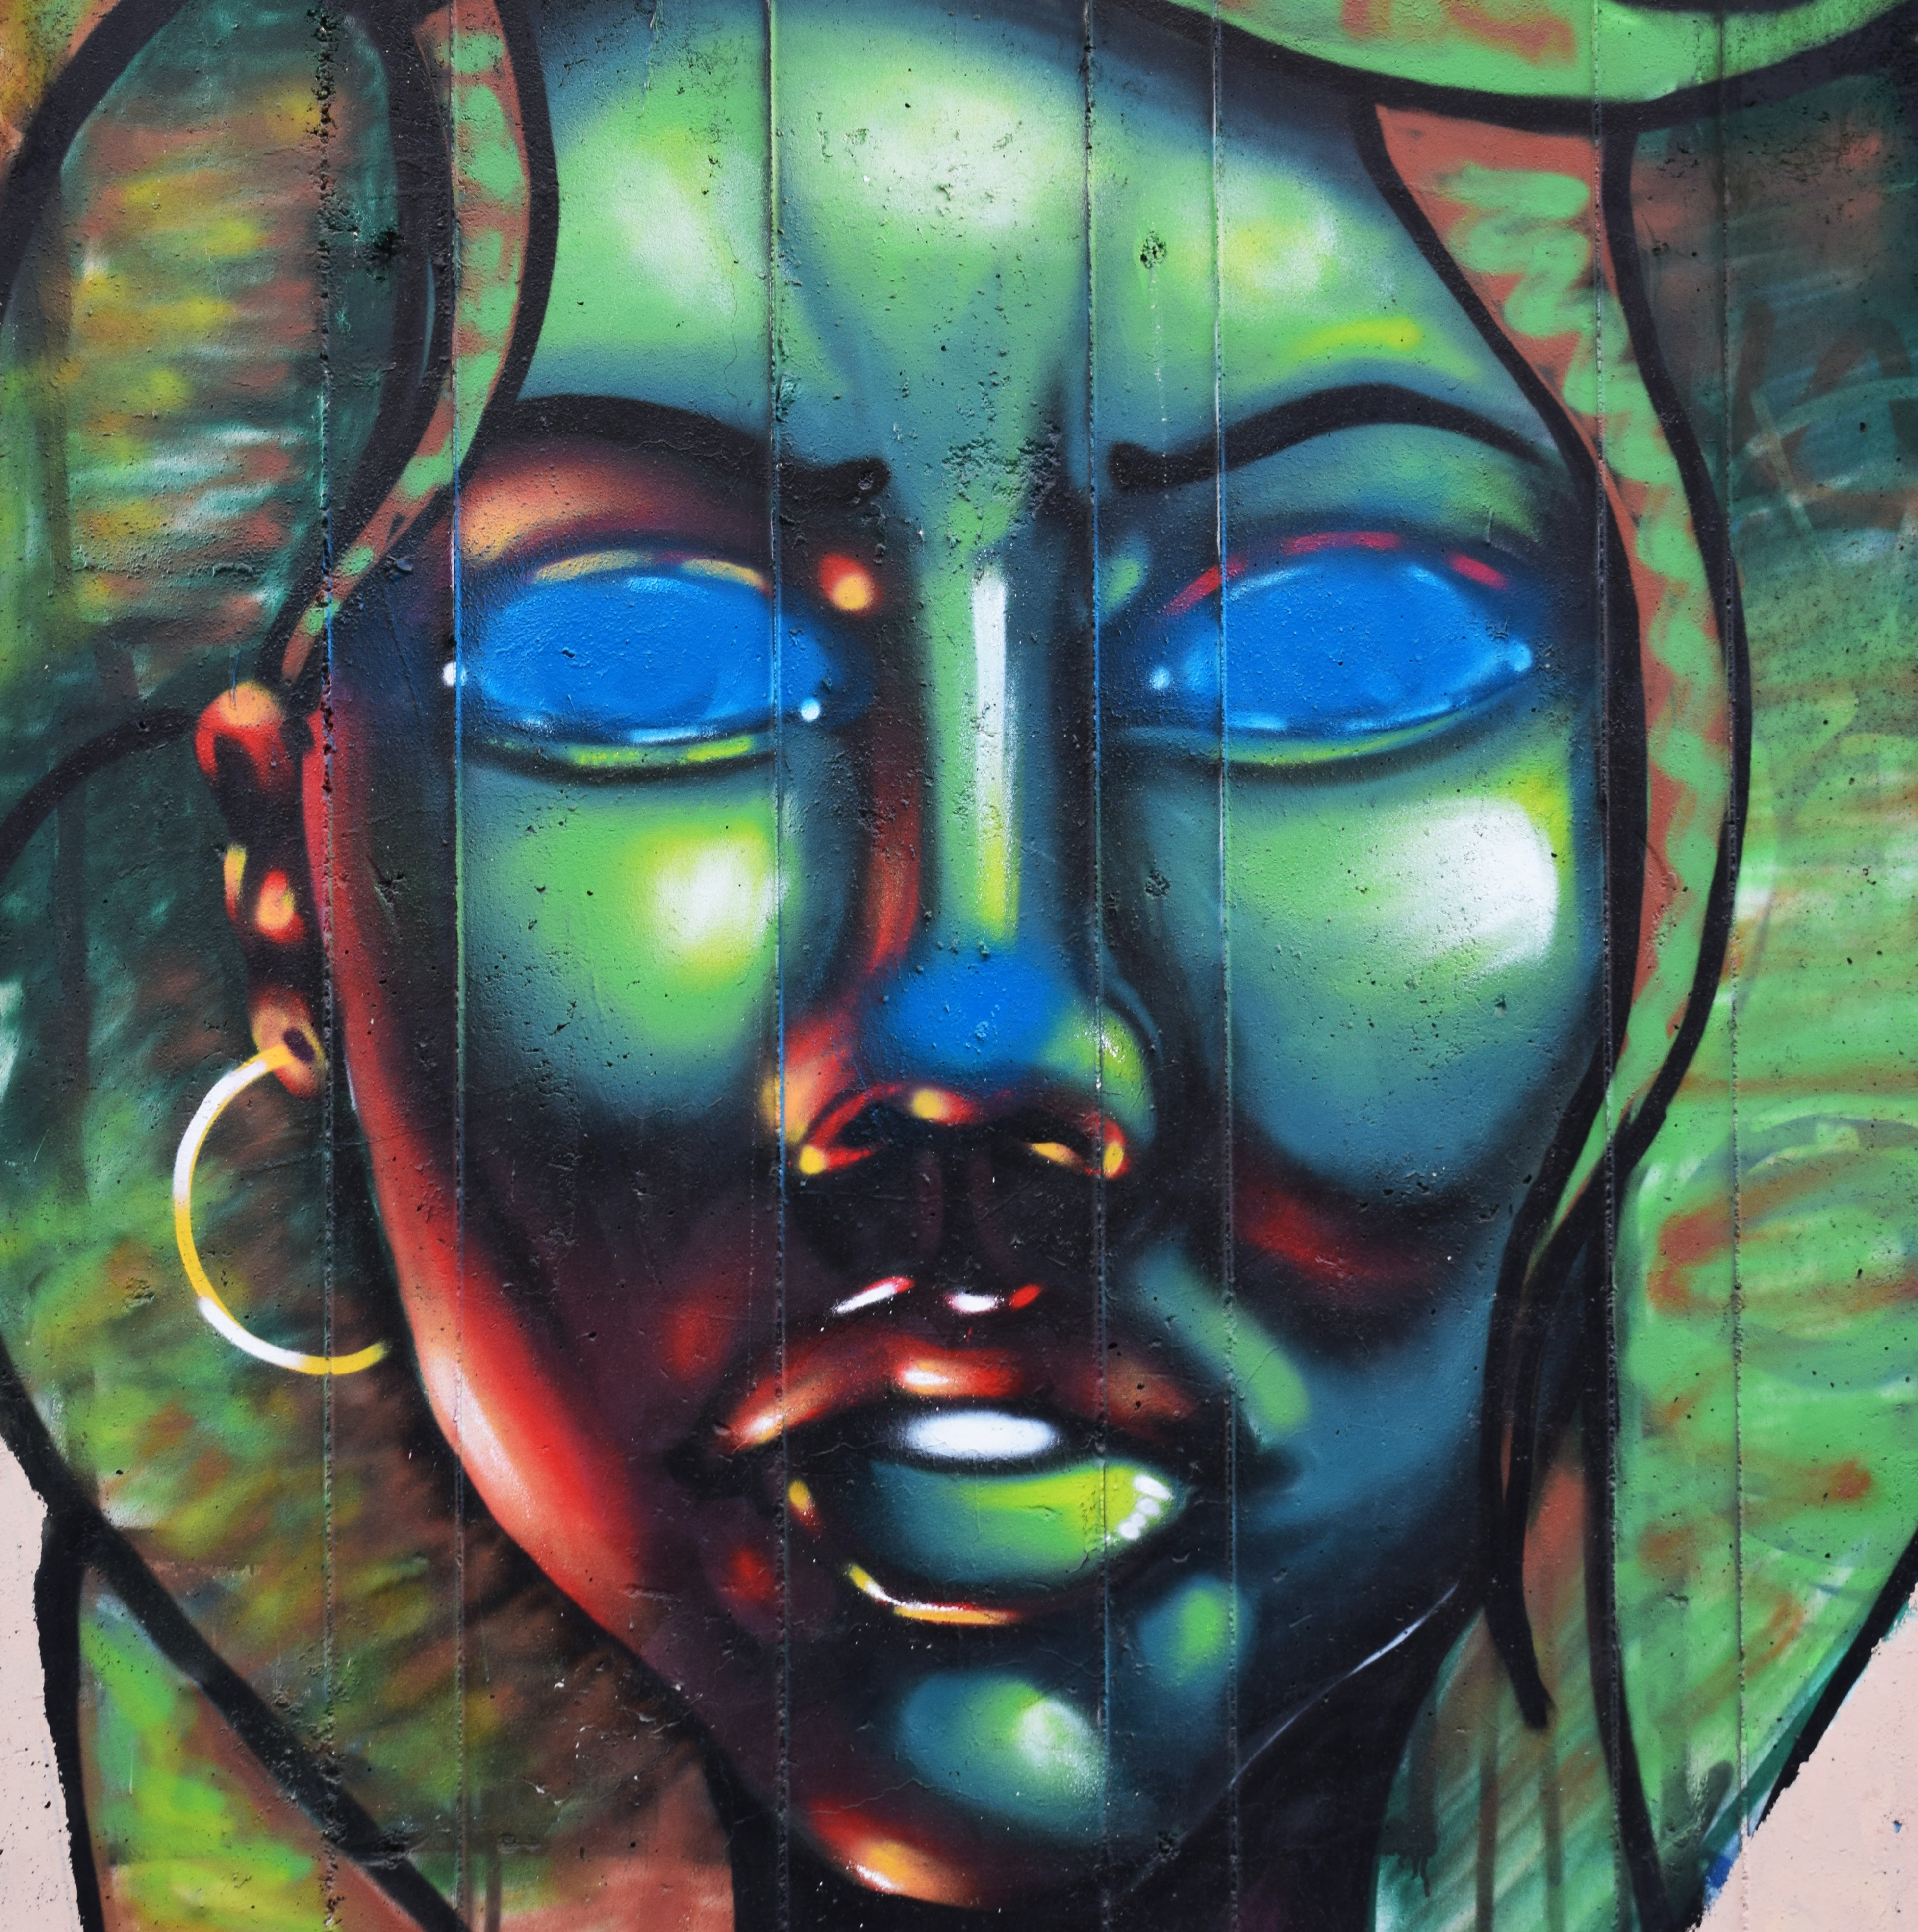 A freaky woman painted on a wall.